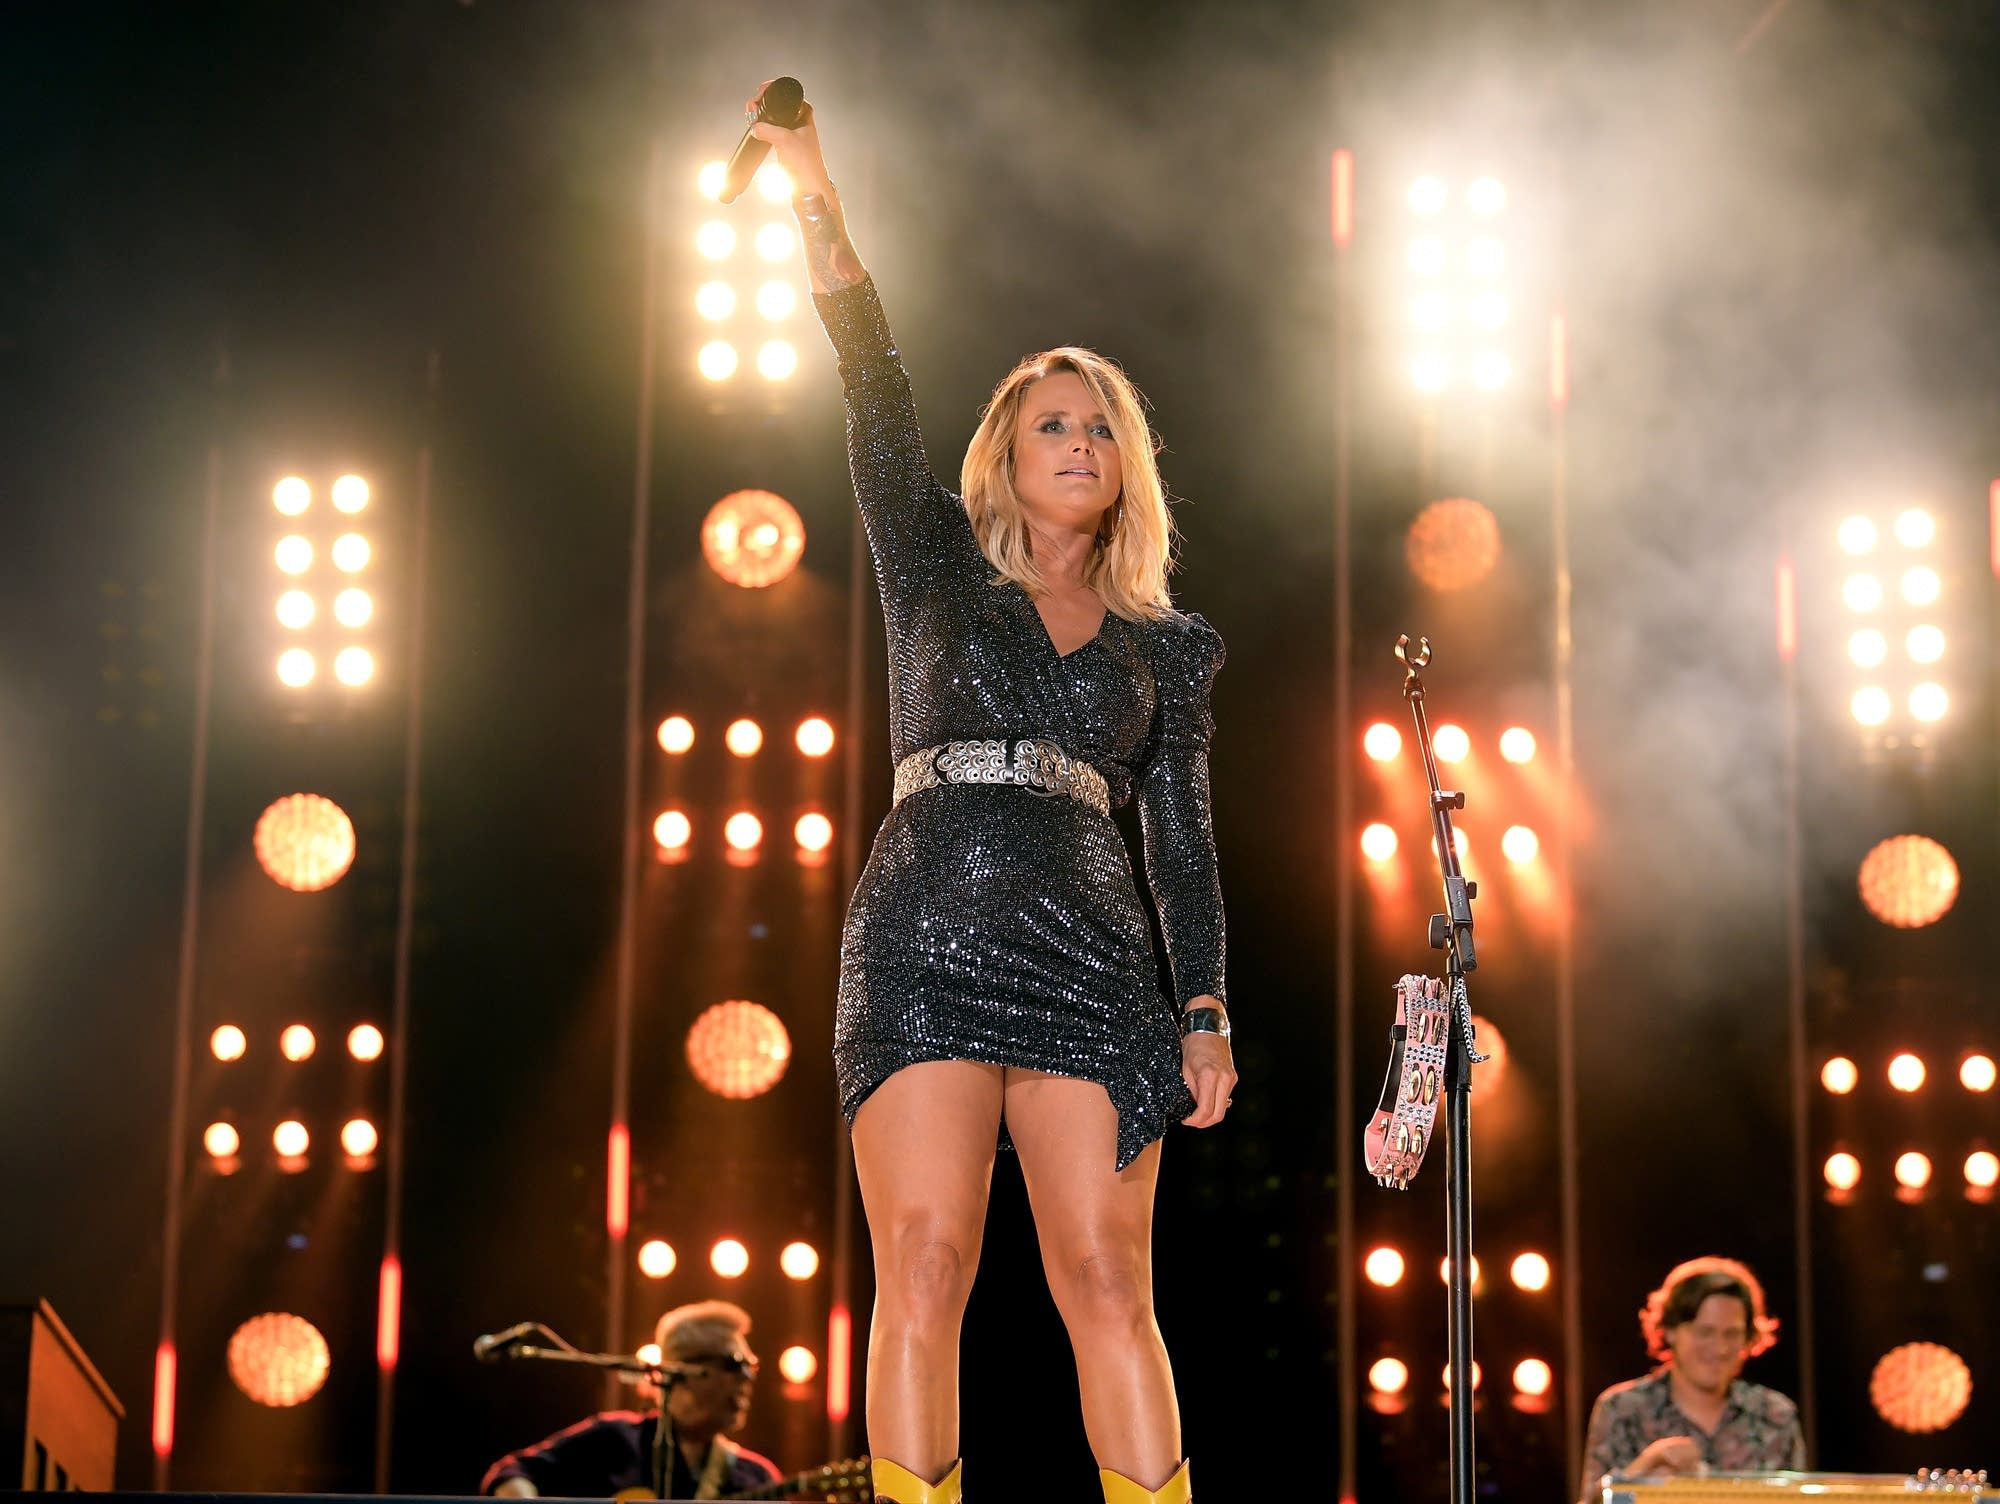 Miranda Lambert at 2019 CMA Music Festival - Day 3